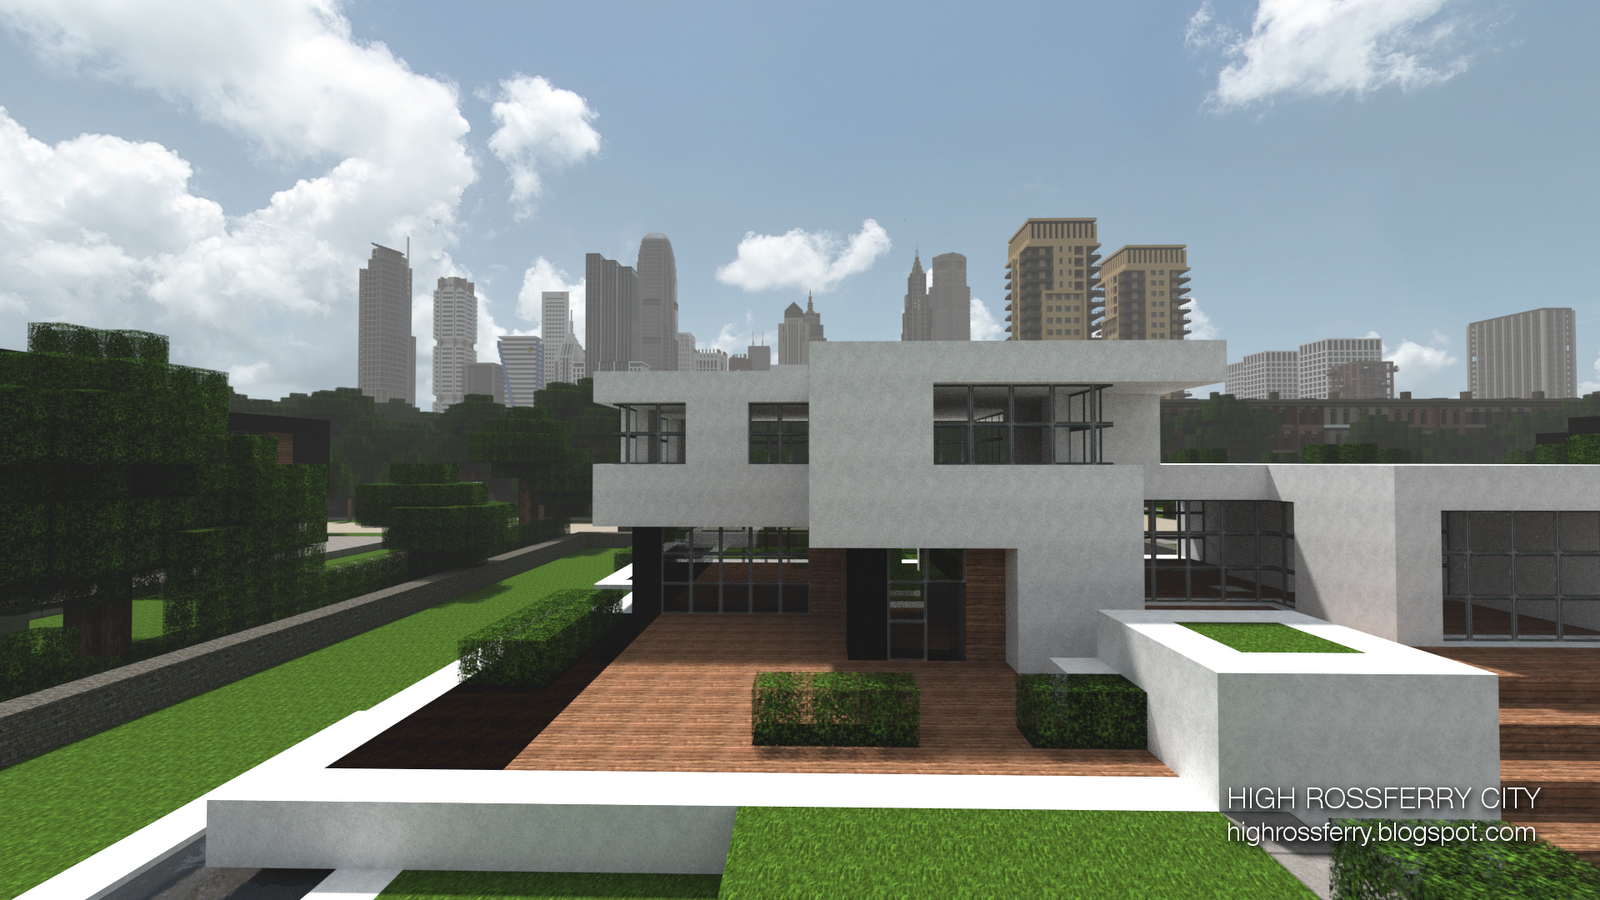 High rossferry city the most detailed city in minecraft screenshots show your creation minecraft forum minecraft forum